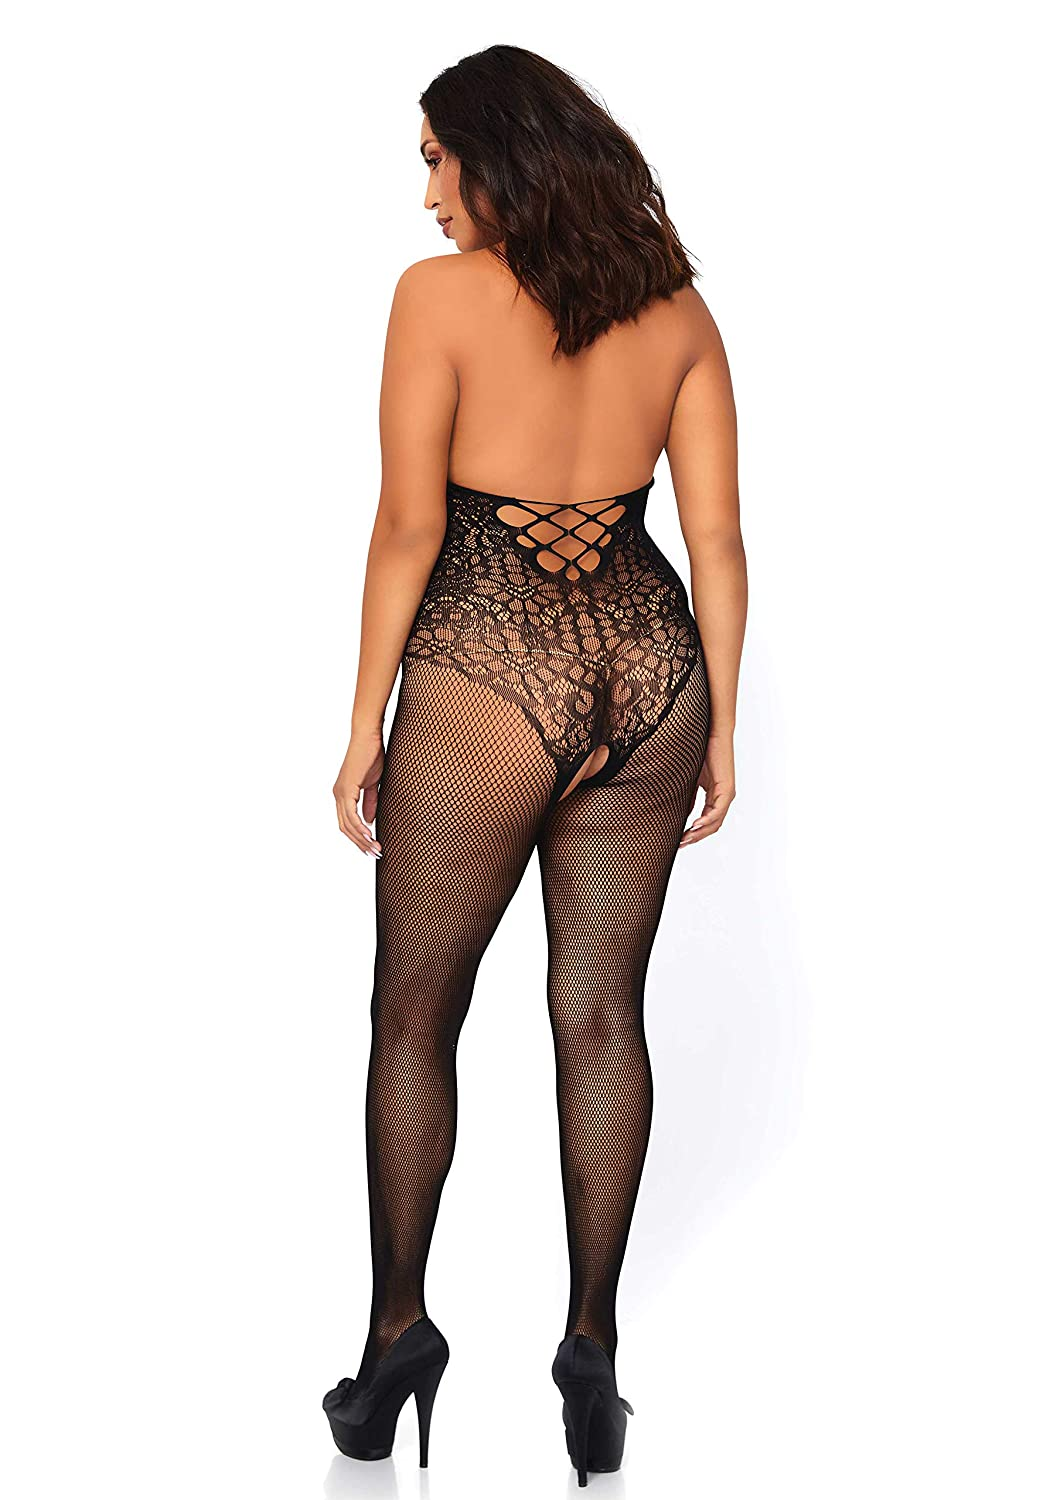 d5c0d6fd5f44 Sexy Ladies Fishnet Floral Lace Hourglass Bodystocking Seamless Erotic Cut  Out Halterneck Body Crotchless Curve Plus Size 14 16 18 (UK L/XL): Amazon.co .uk: ...